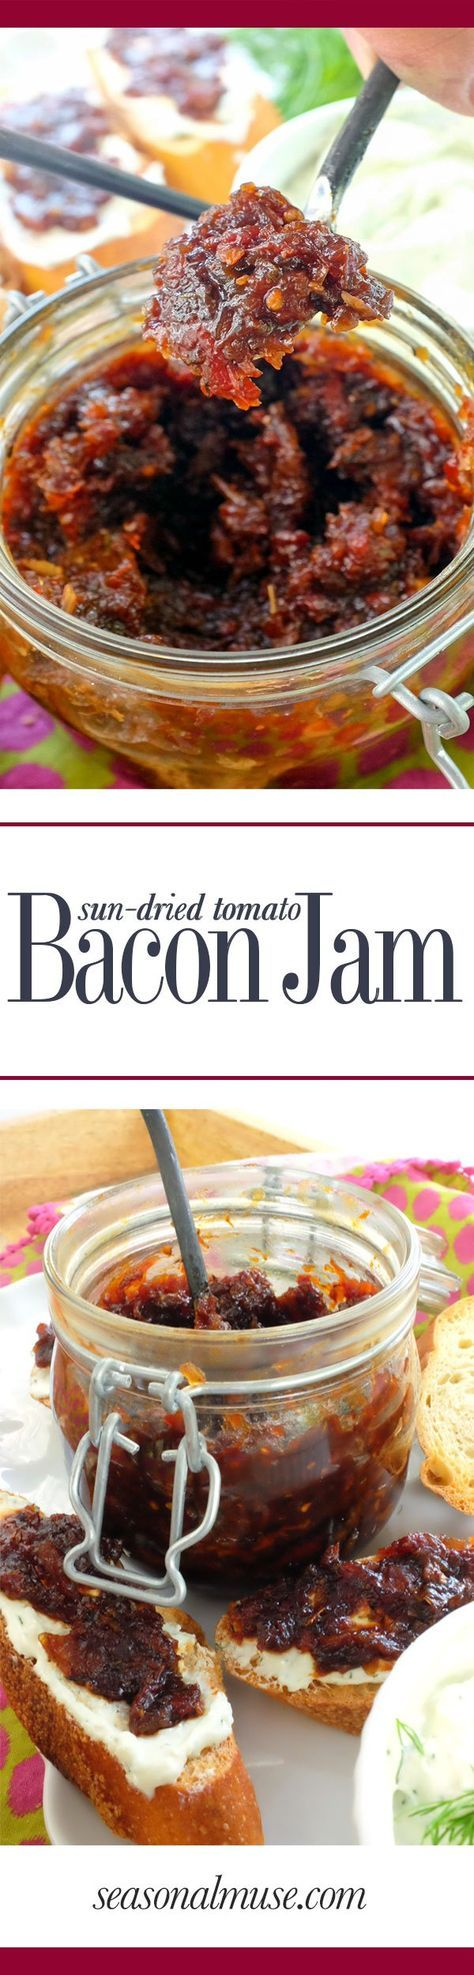 Bacon Jam with sun-dried tomatoes - YUM! Add it to your cheese board or tapas bar menu. Fantastic on a burger or panini | seasonalmuse.com